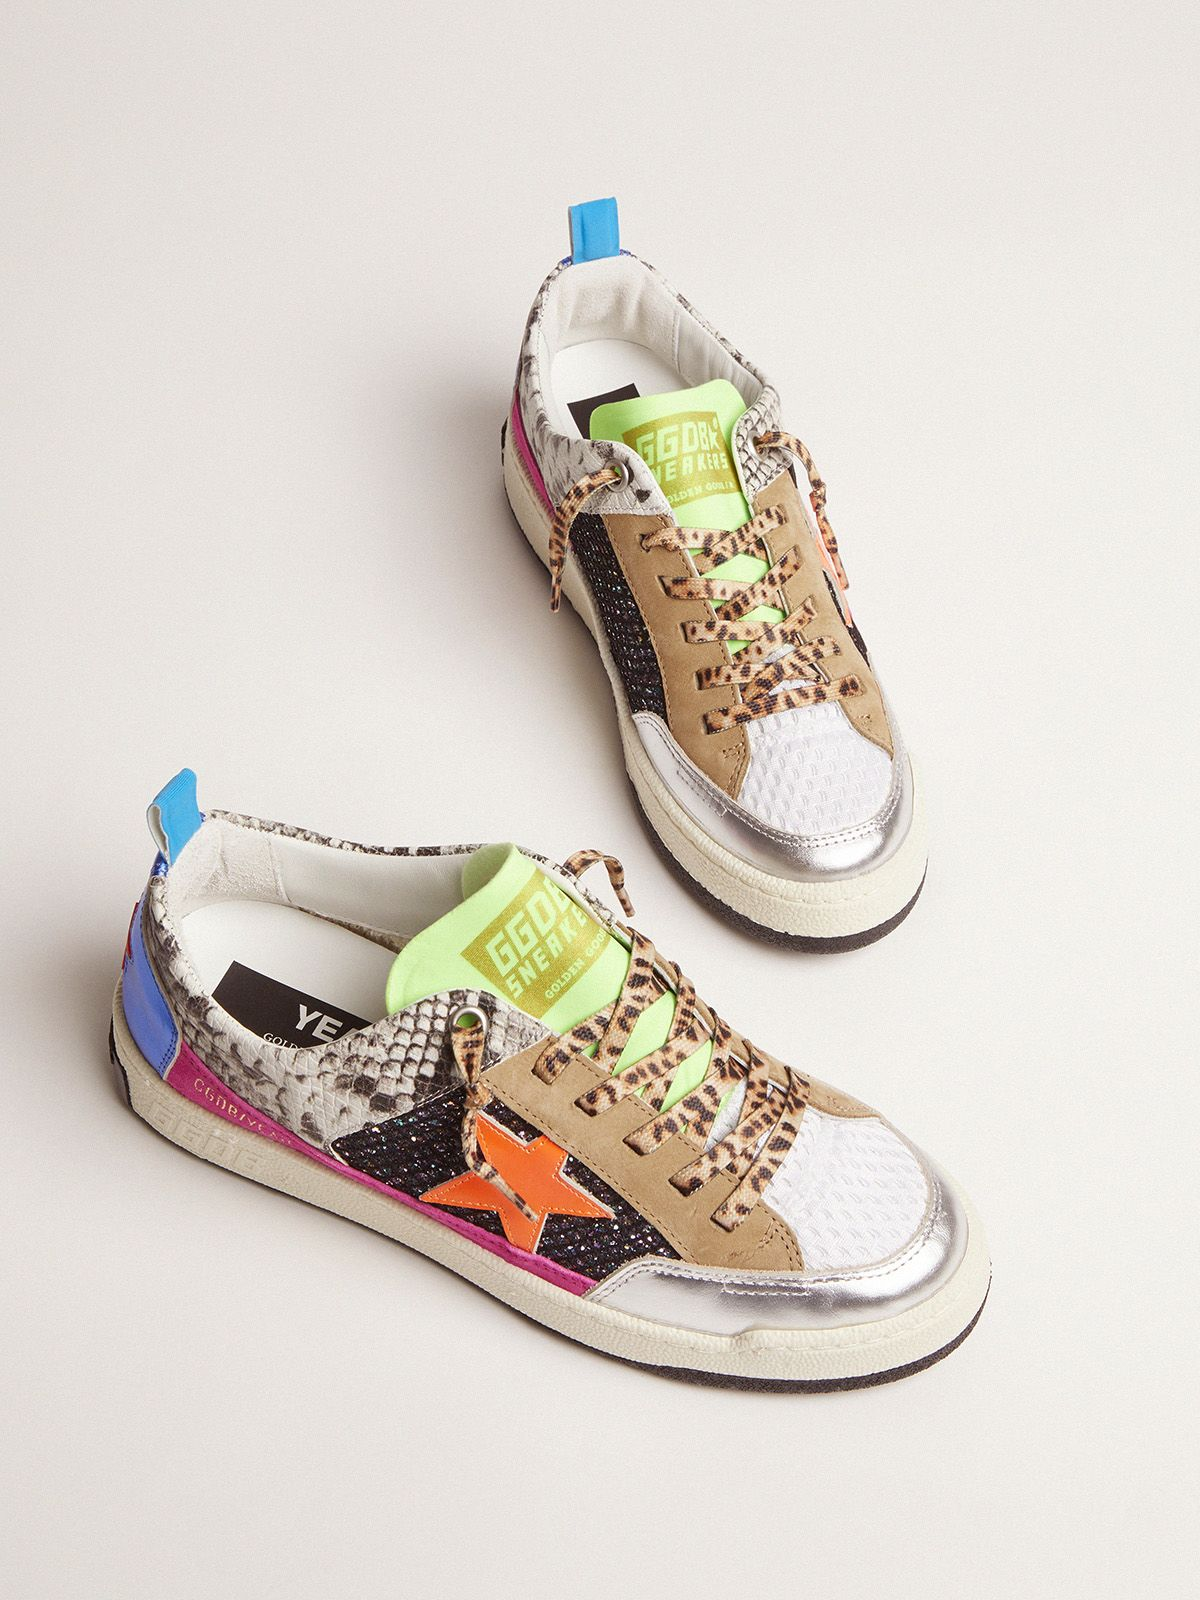 Golden Goose - Women's snakeskin-print Yeah sneakers with orange star in